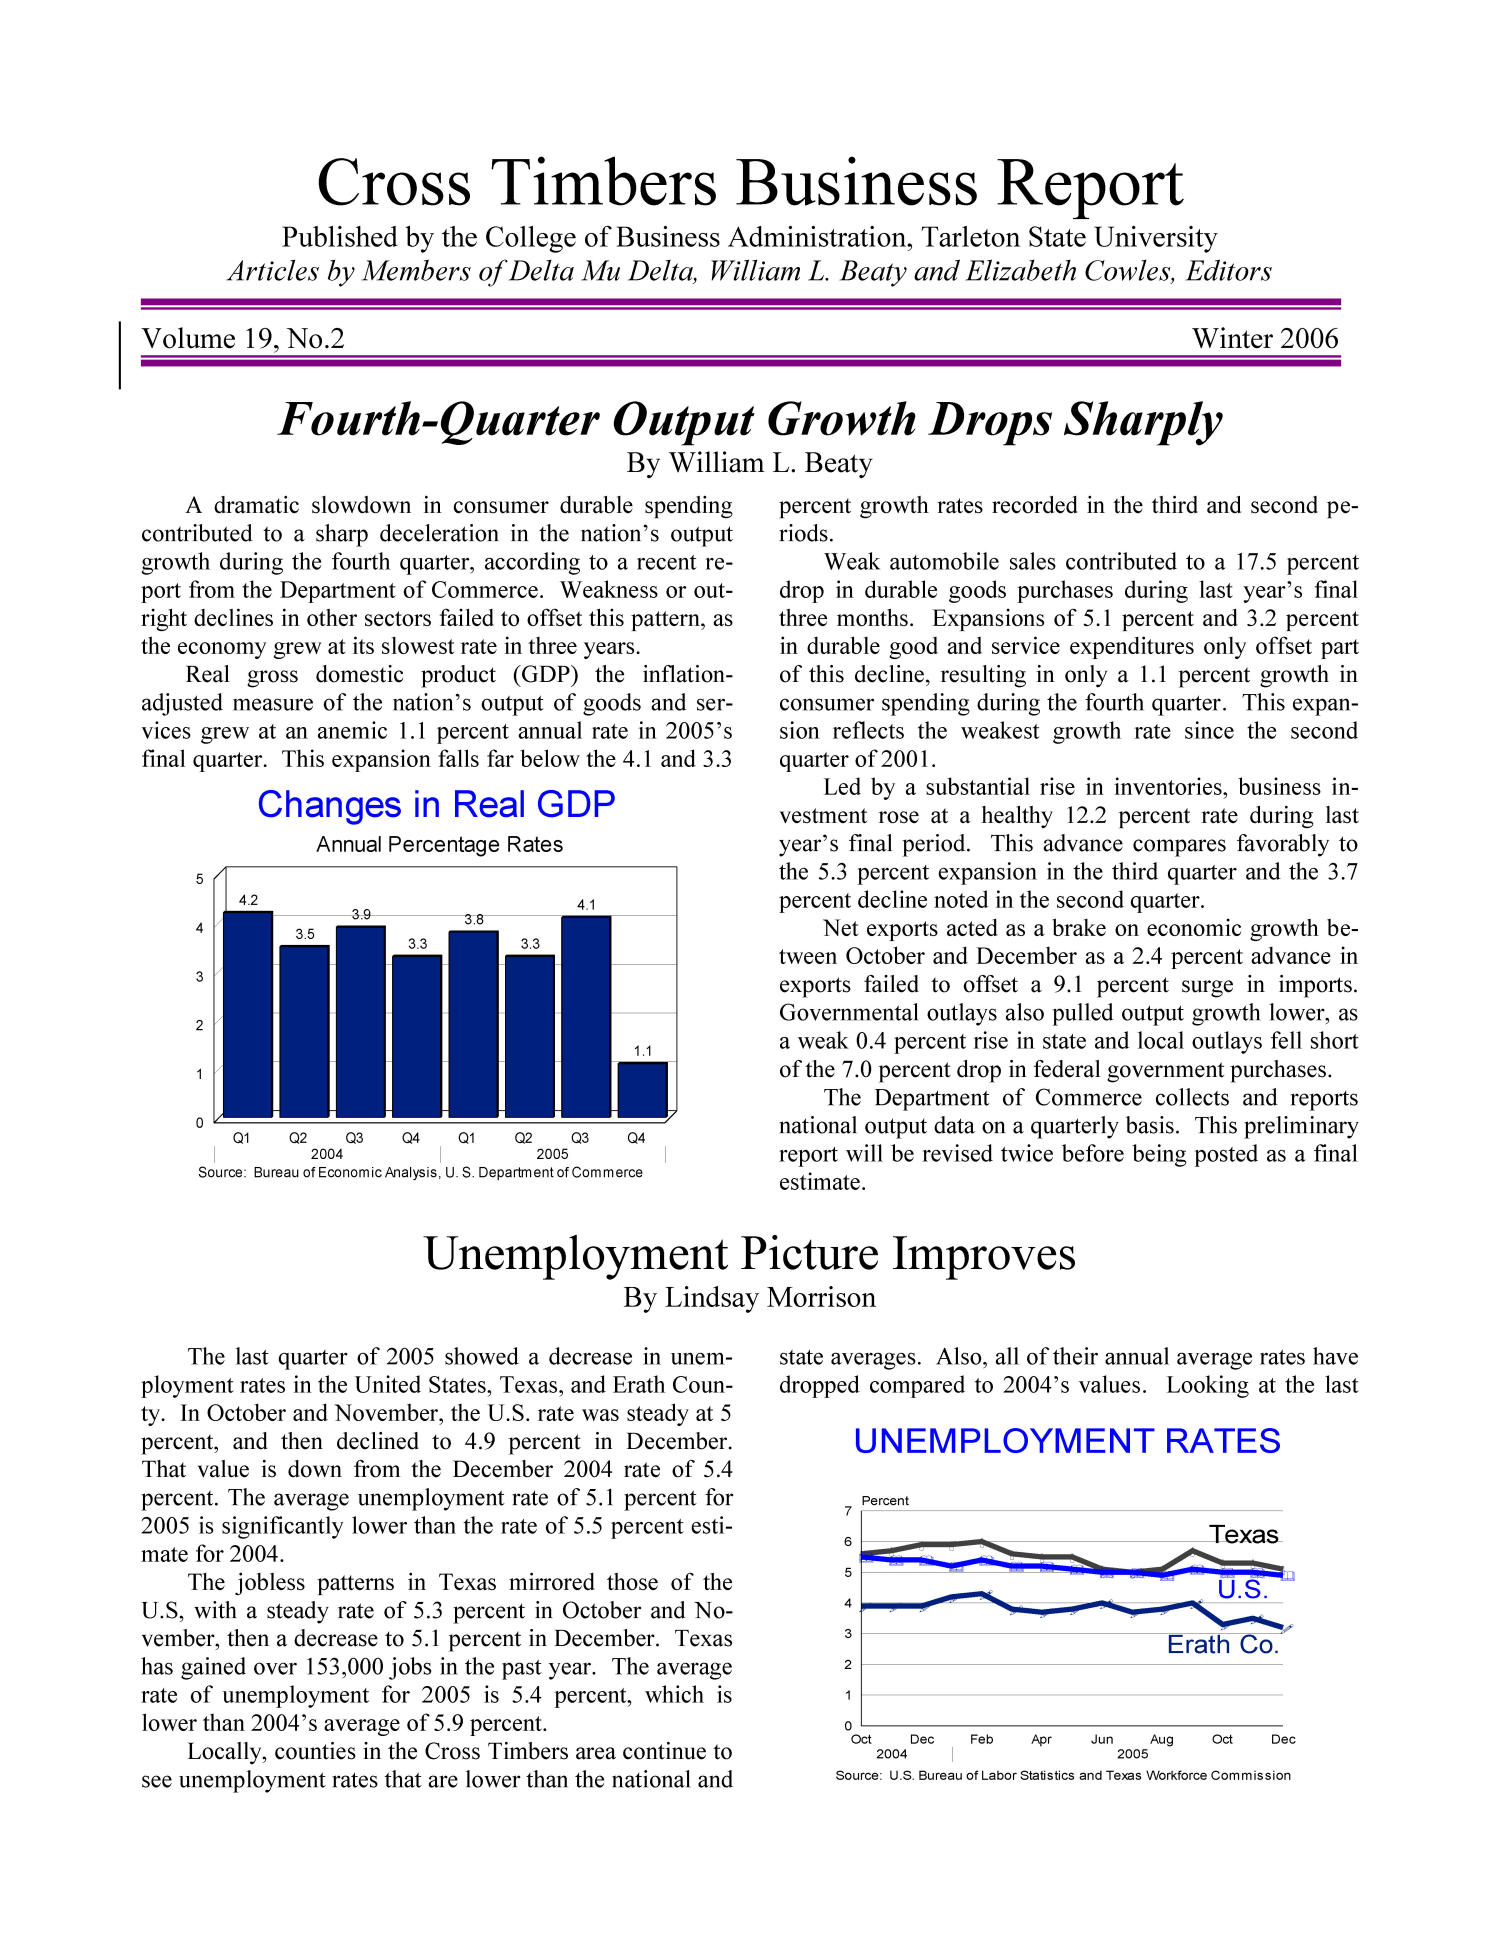 Cross Timbers Business Report, Volume 19, Number 2, Winter 2006                                                                                                      1